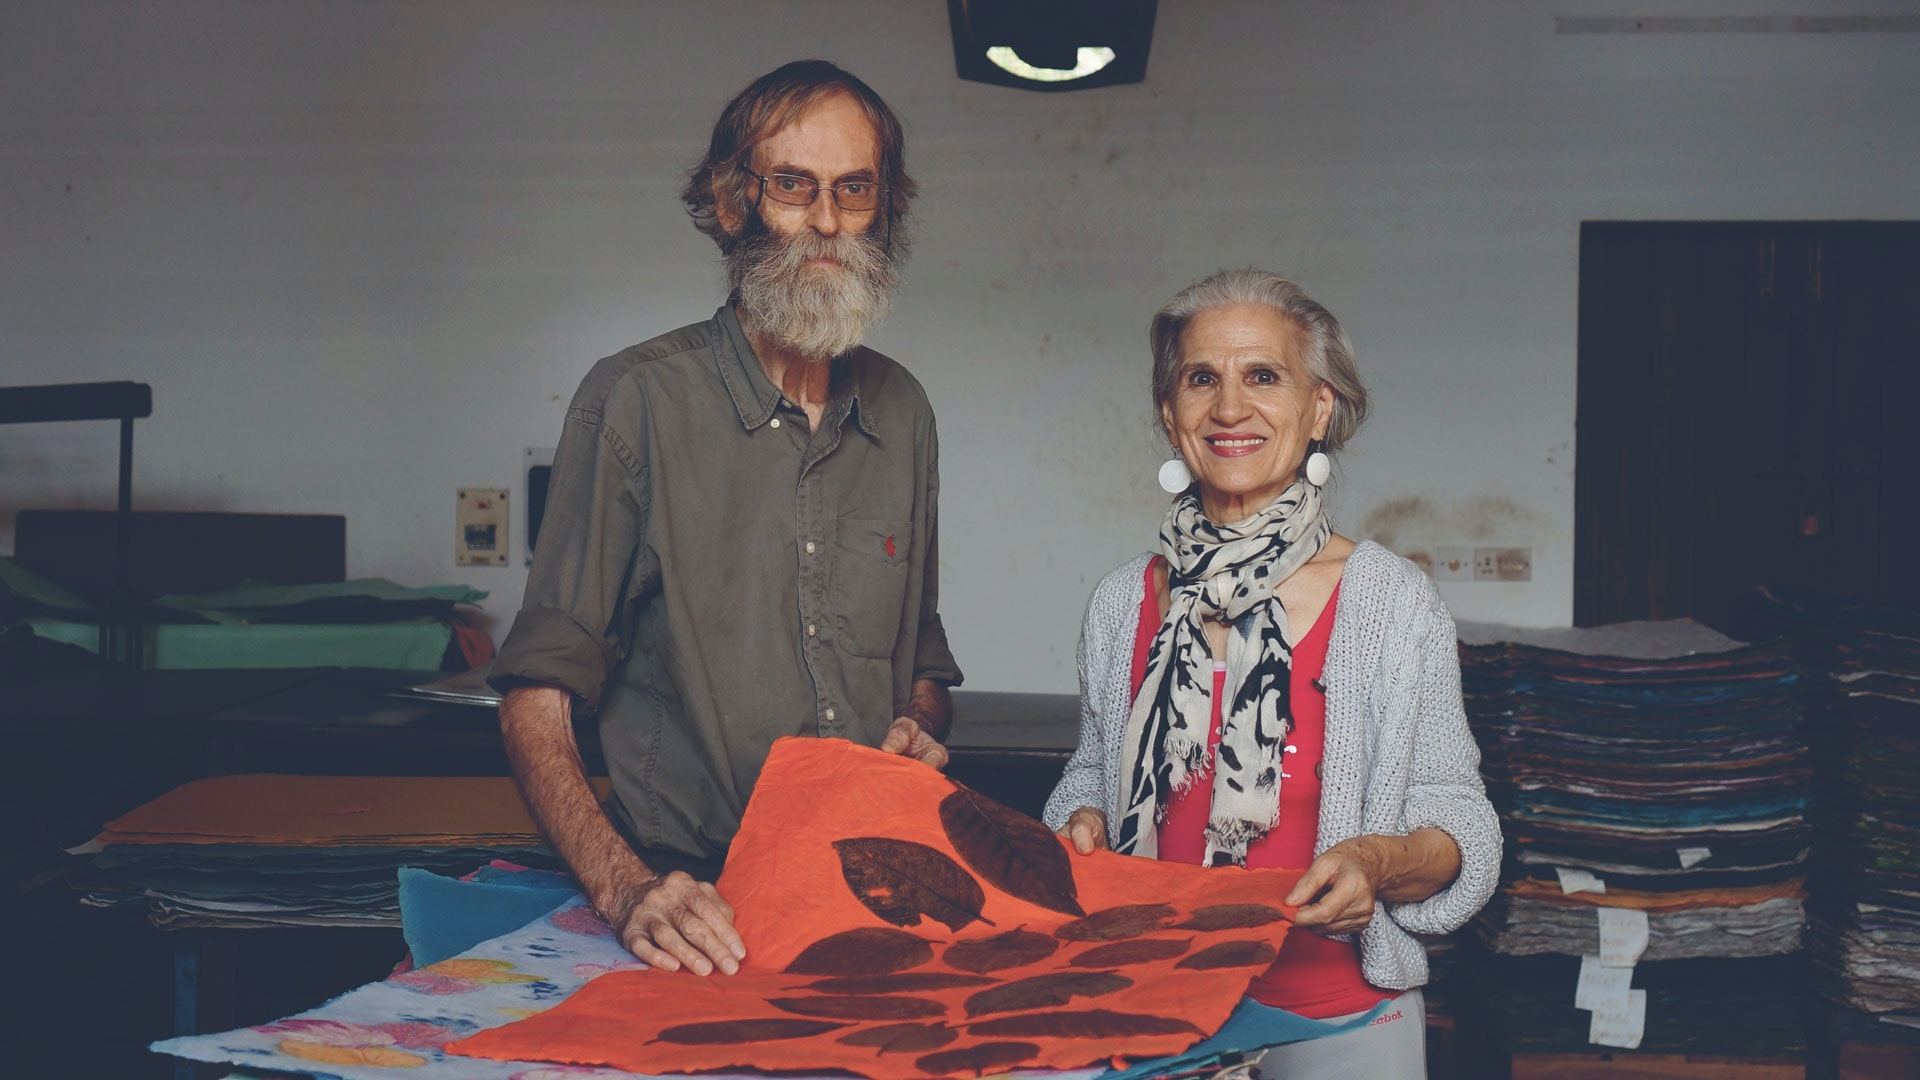 Paper Making with Luisa and Herve